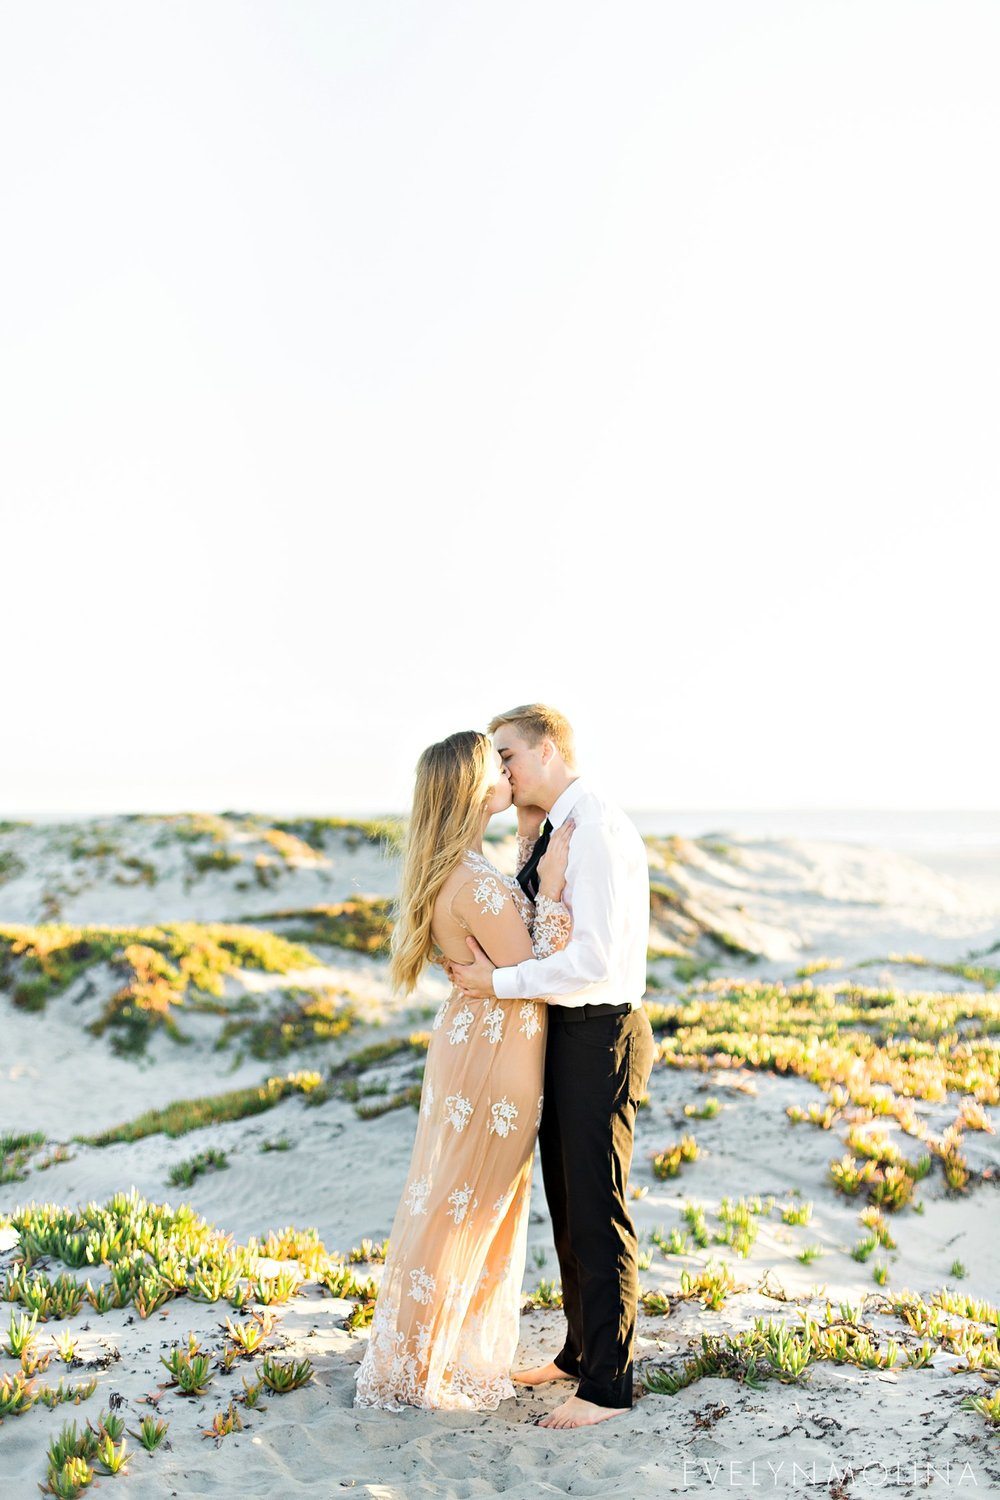 Coronado Engagement Session - Megan and Colin_036.jpg